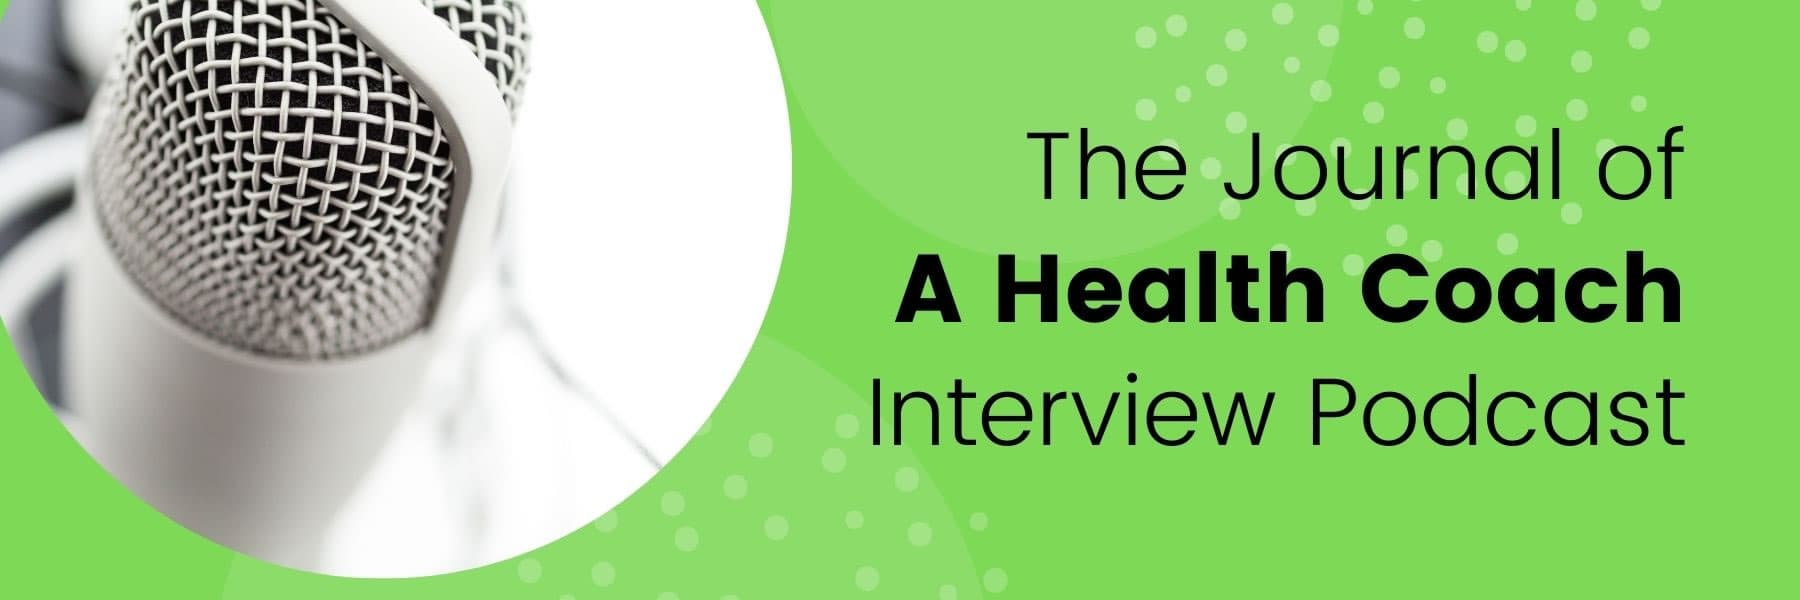 health-coach-podcast-interviews-physical-therapy-dr-jordan-floyd-on-exercise limitations-2